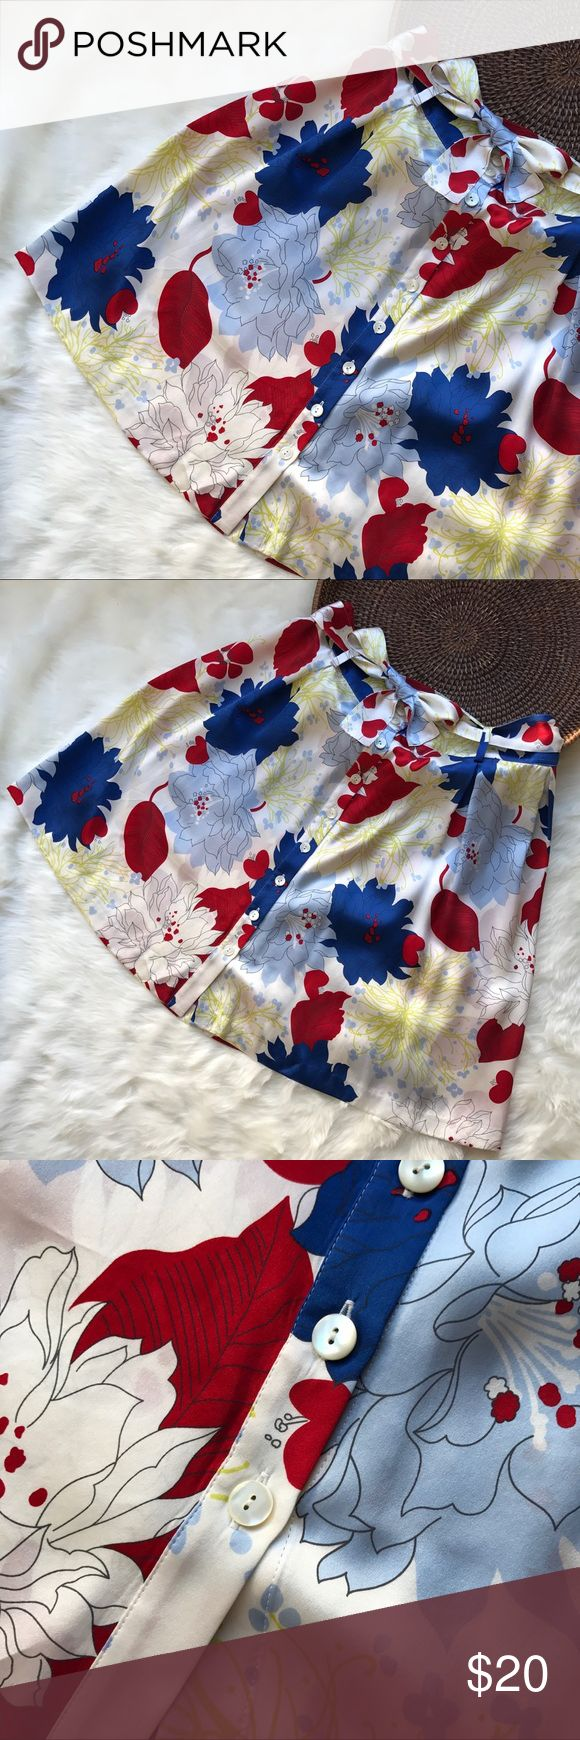 "H Tommy Hilfiger Colorful Floral Button Skirt SZ 4 H Tommy Hilfiger Colorful Floral Button Skirt Size 4. Button closure on side. Matching silk belt. 100% silk with no lining, is see through. Vibrant blue, red, white floral pattern. Perfect for work or outdoor parties.  Belt has four small holes pictured on two on either end of belt. Waist 15"" across flat. Length 21"" Tommy Hilfiger Skirts Mini"